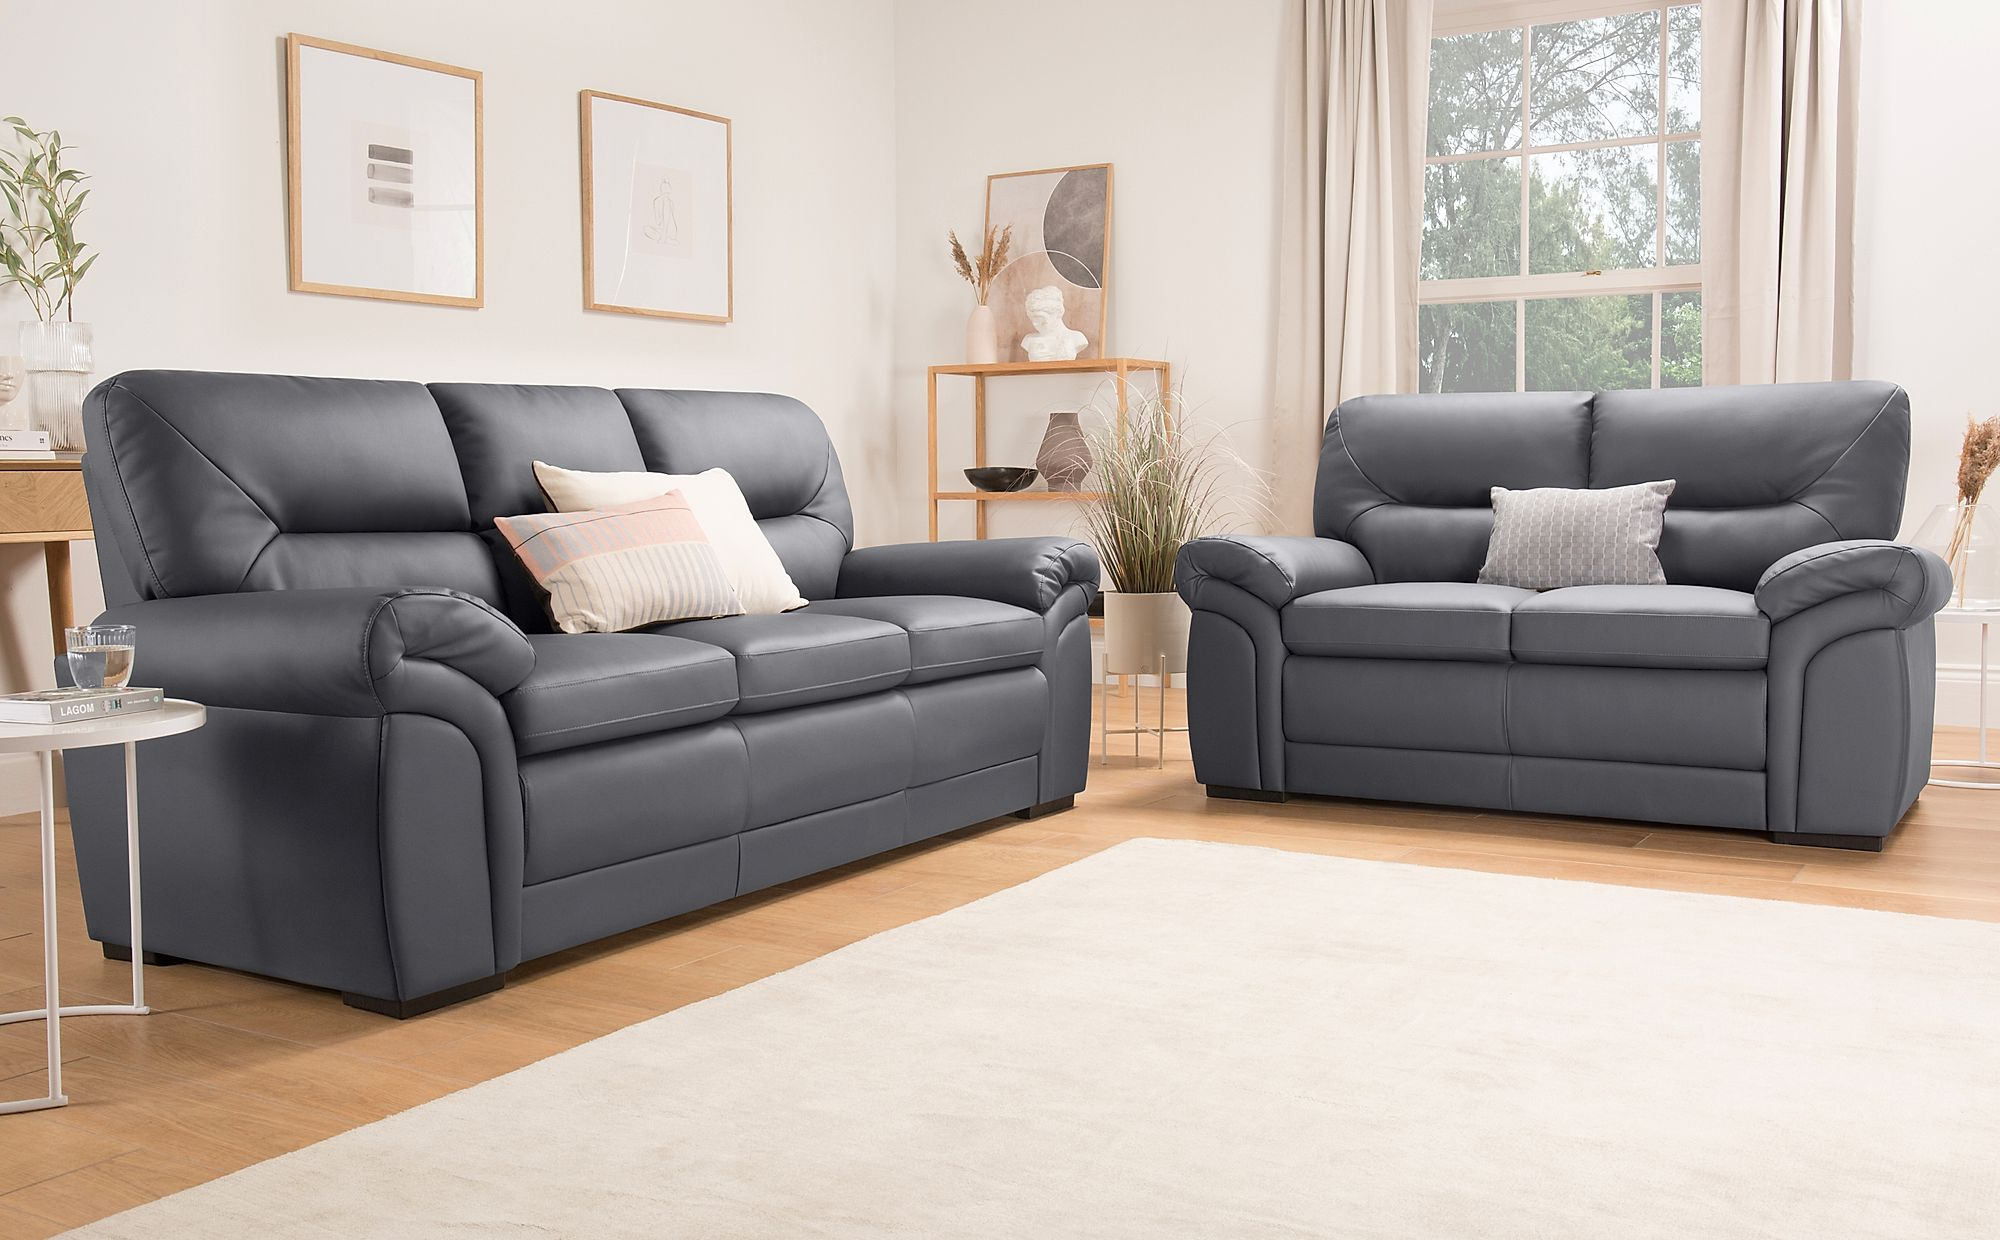 Bromley Grey Leather Sofa 3+2 Seater Only £849.98 | Furniture Choice